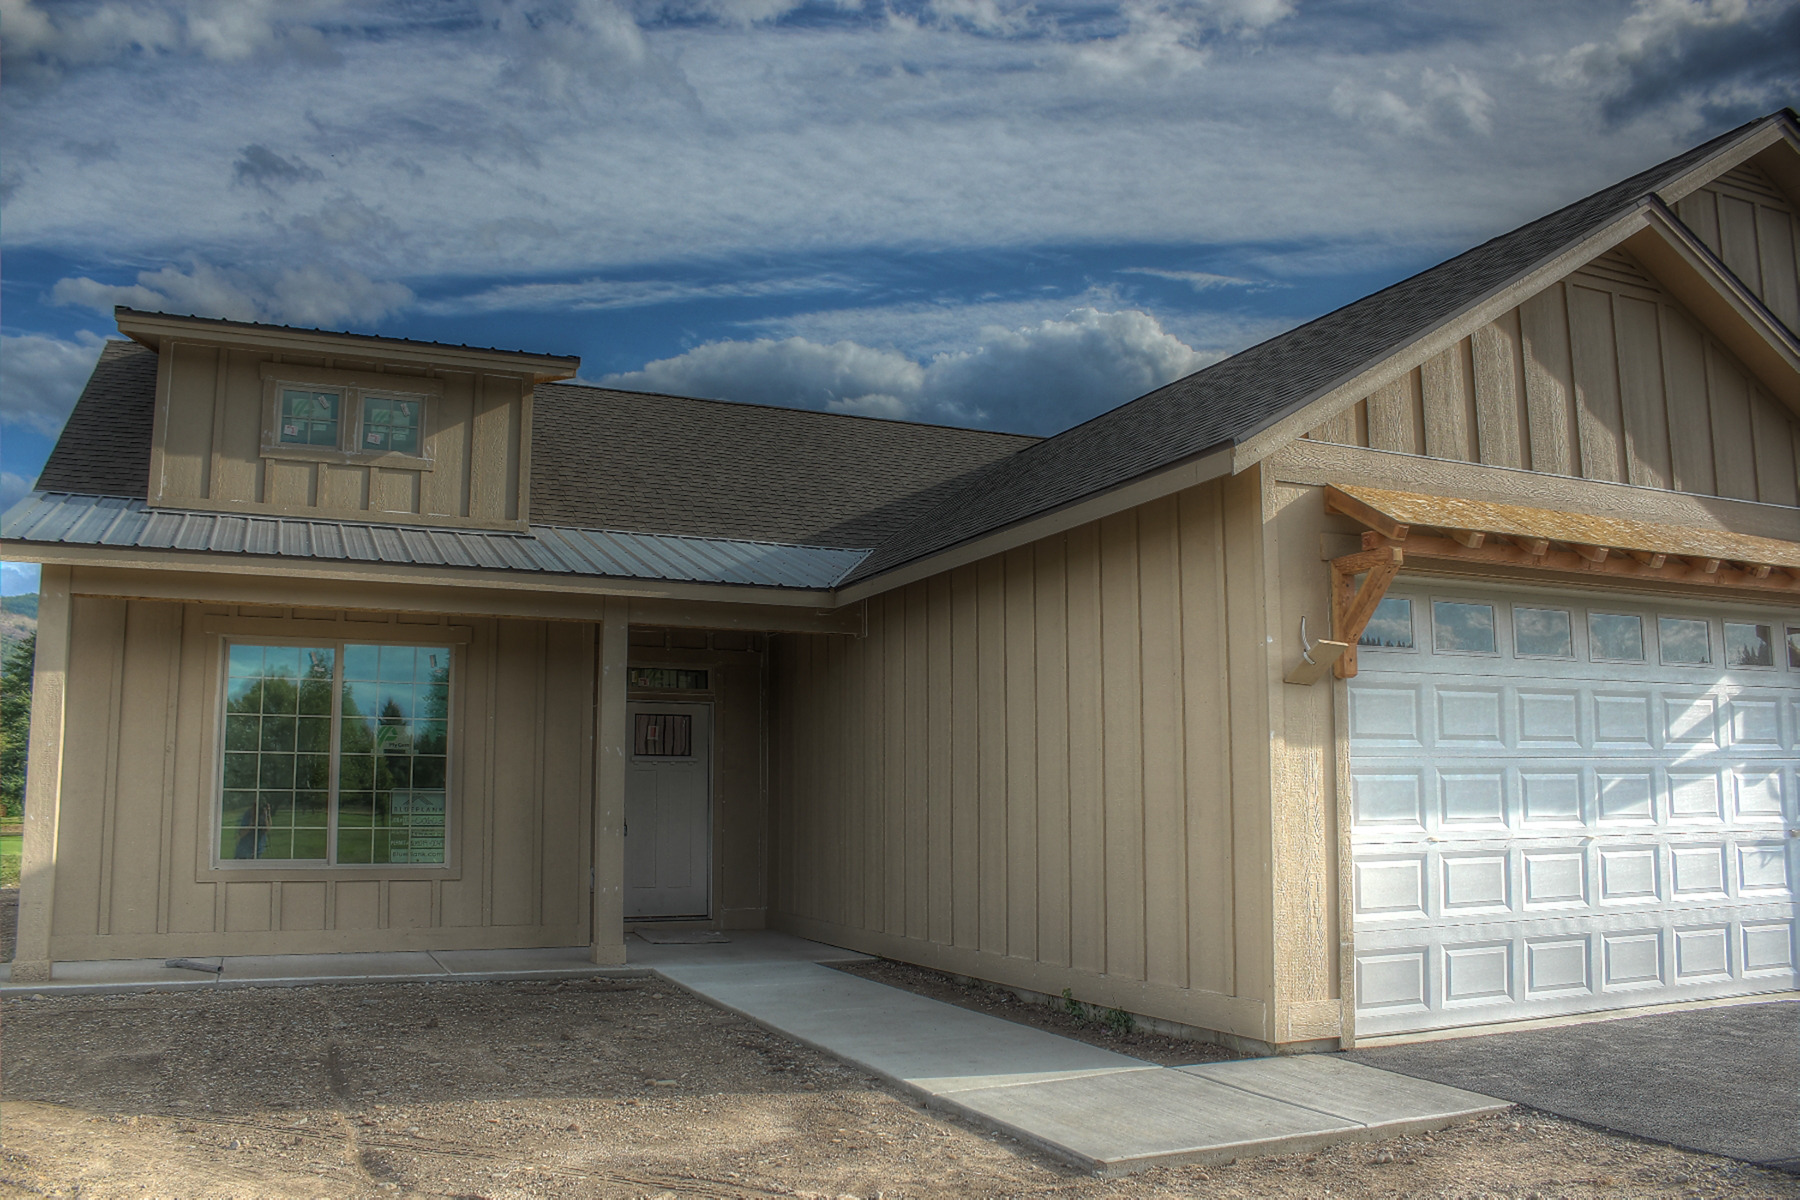 Single Family Homes for Sale at River View Ridge-Grand 16 Rimrock Priest River, Idaho 83856 United States